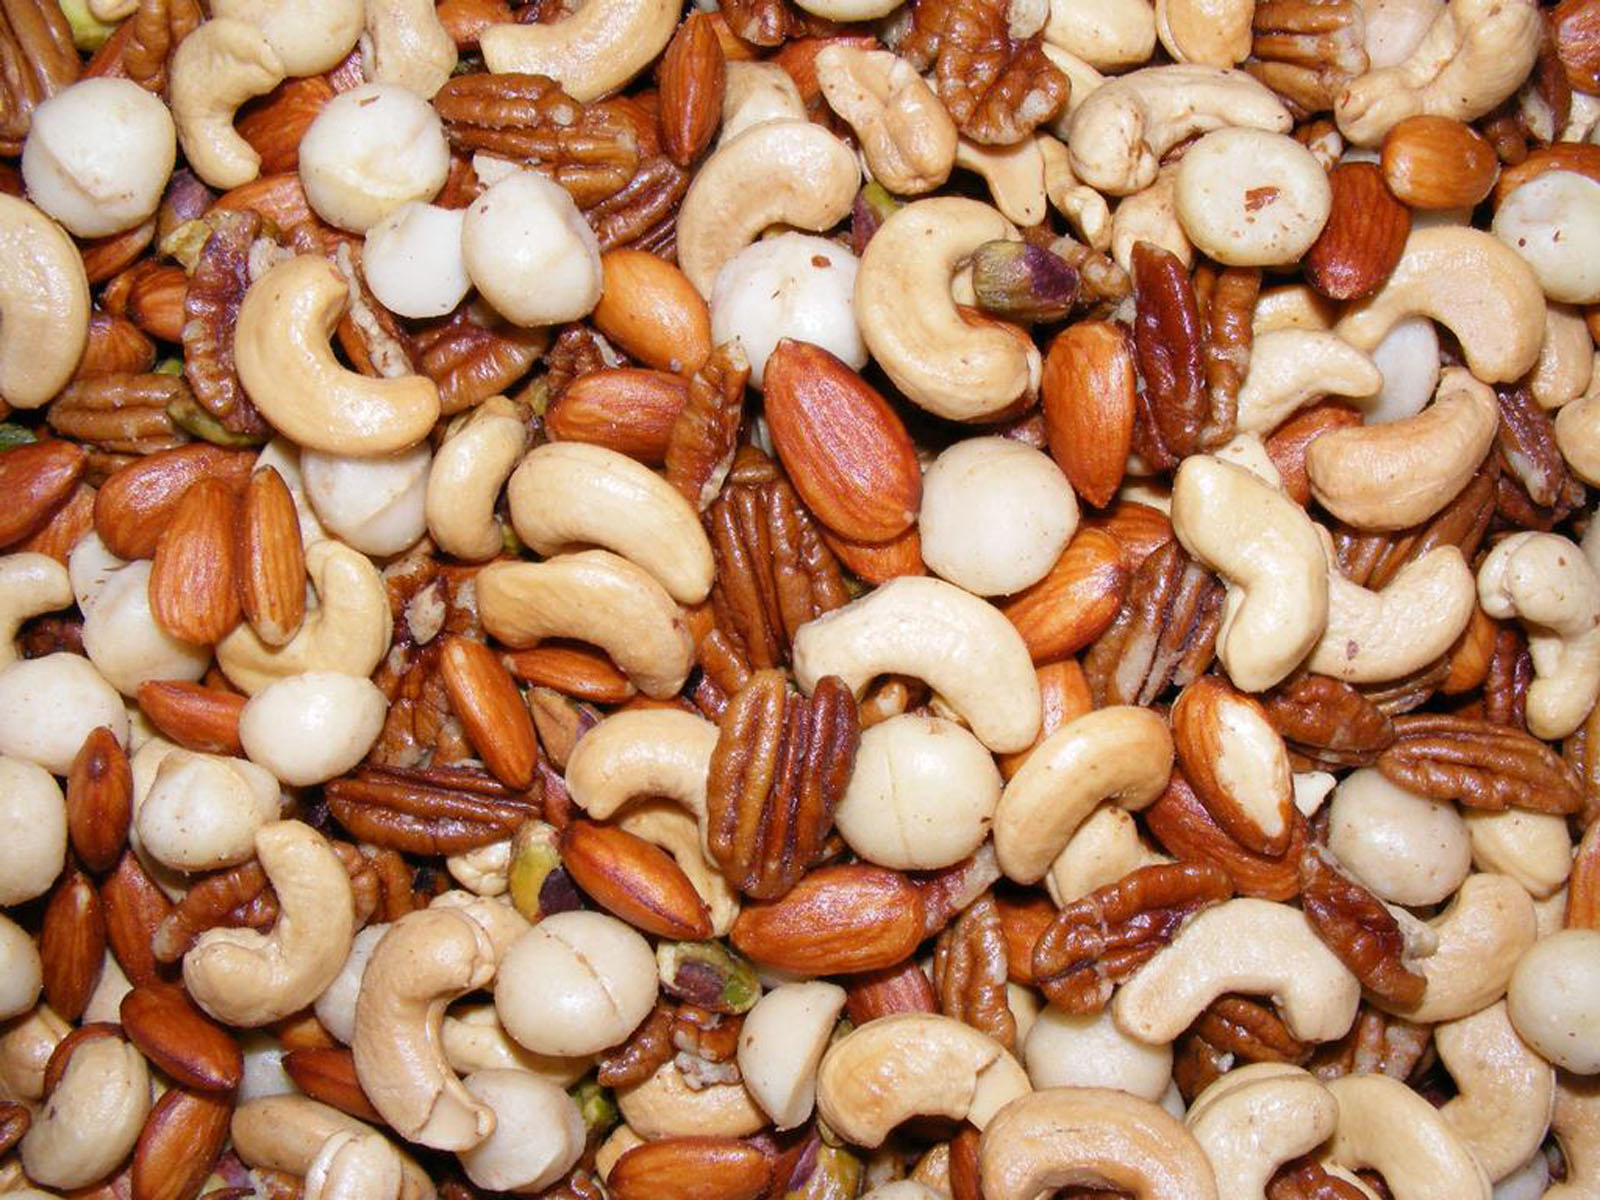 Wallpapers candy with mixed nuts for Cuisine wallpaper